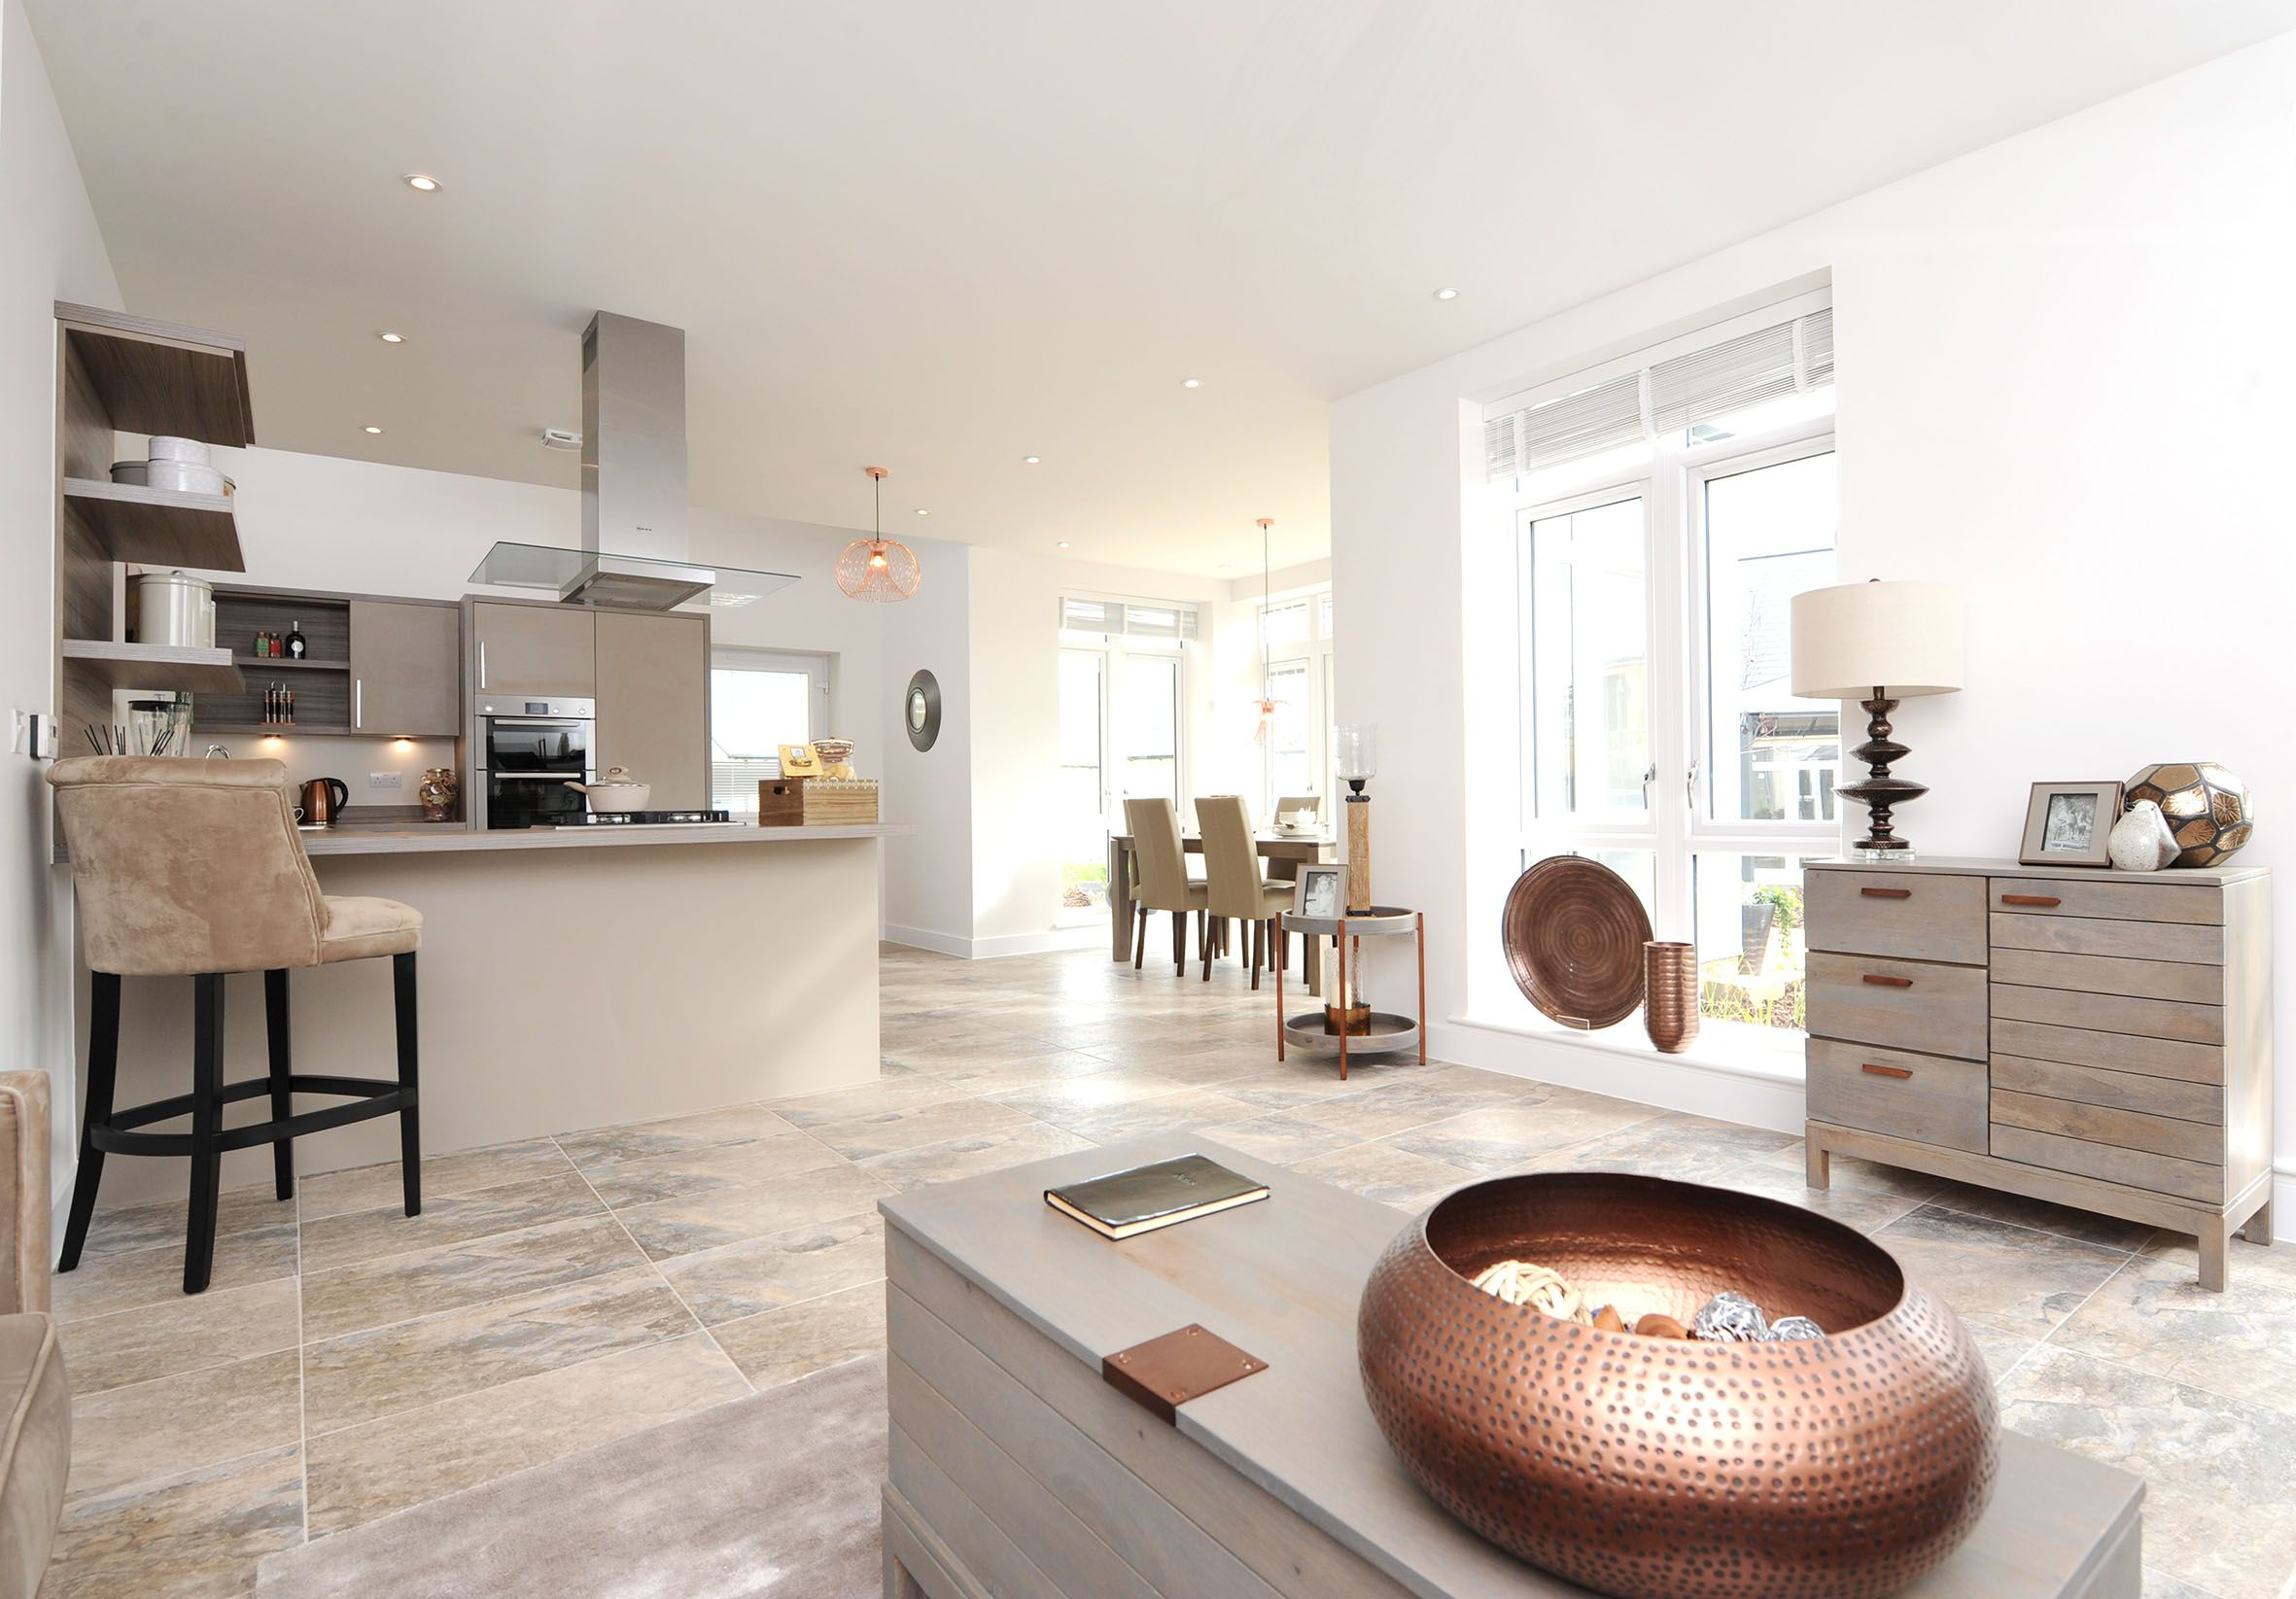 Open Plan Living In Our 2 3 Bedroom Bungalows At Terlingham Gardens Hawkinge A Gated Dev Open Plan Kitchen Dining Open Plan Kitchen Interior Design And Build